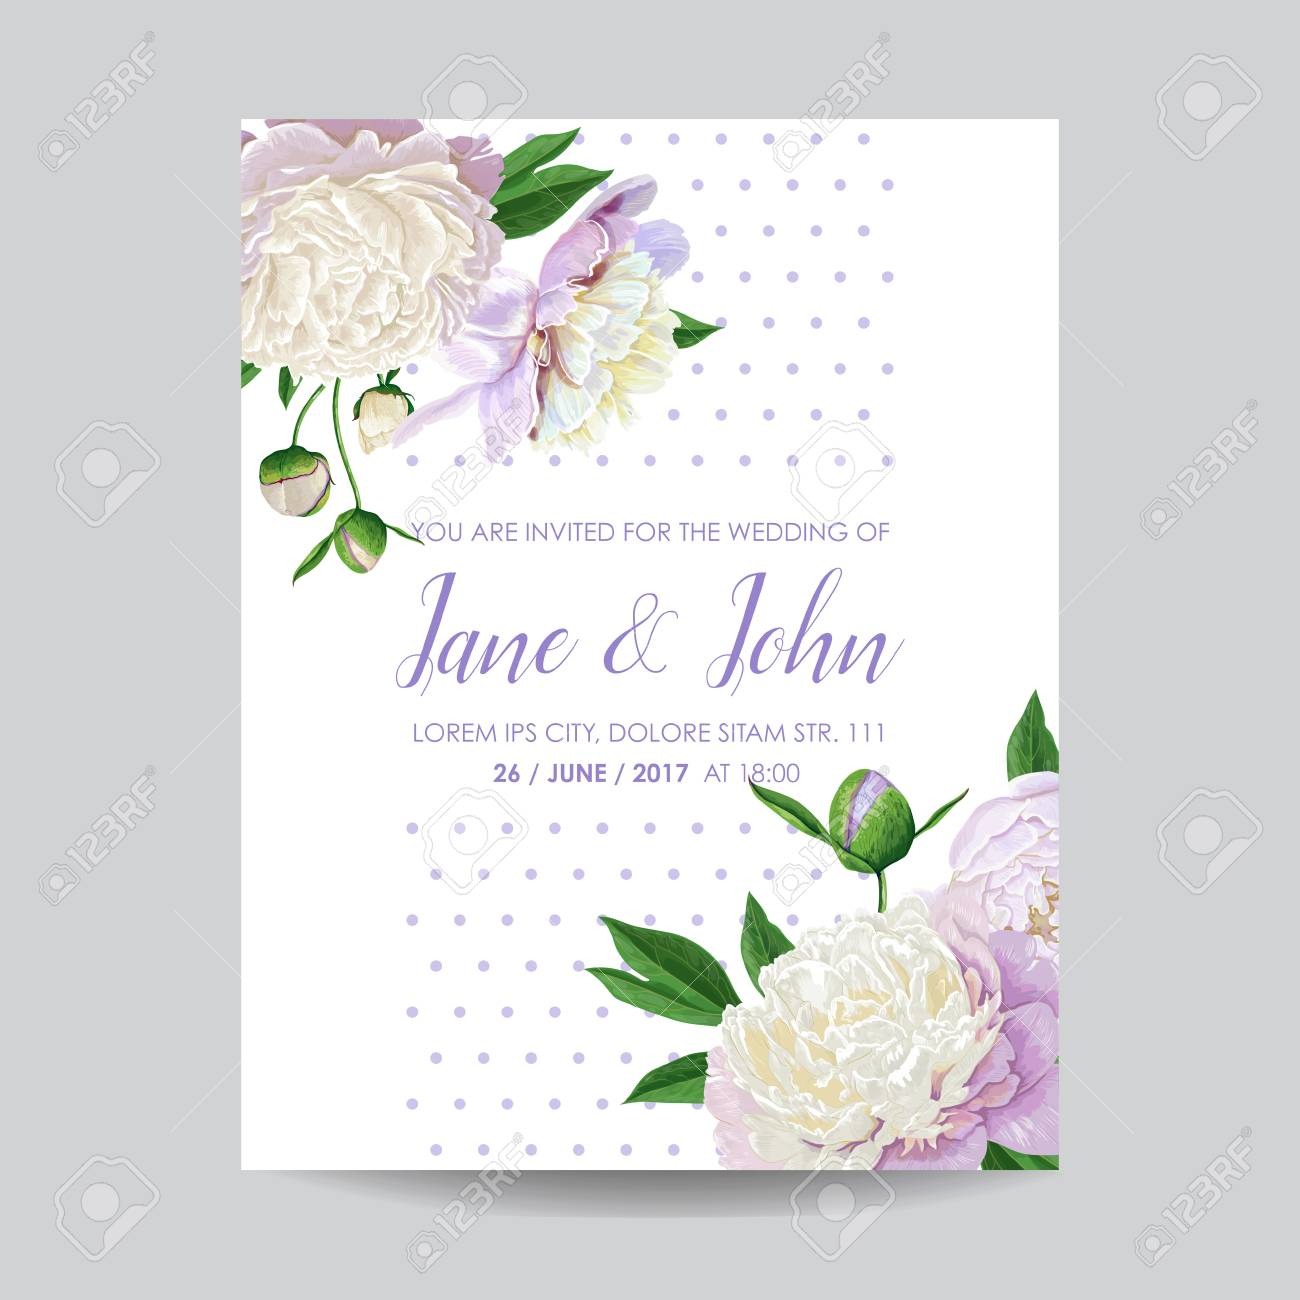 Floral Wedding Invitation Template. Save The Date Card With ...